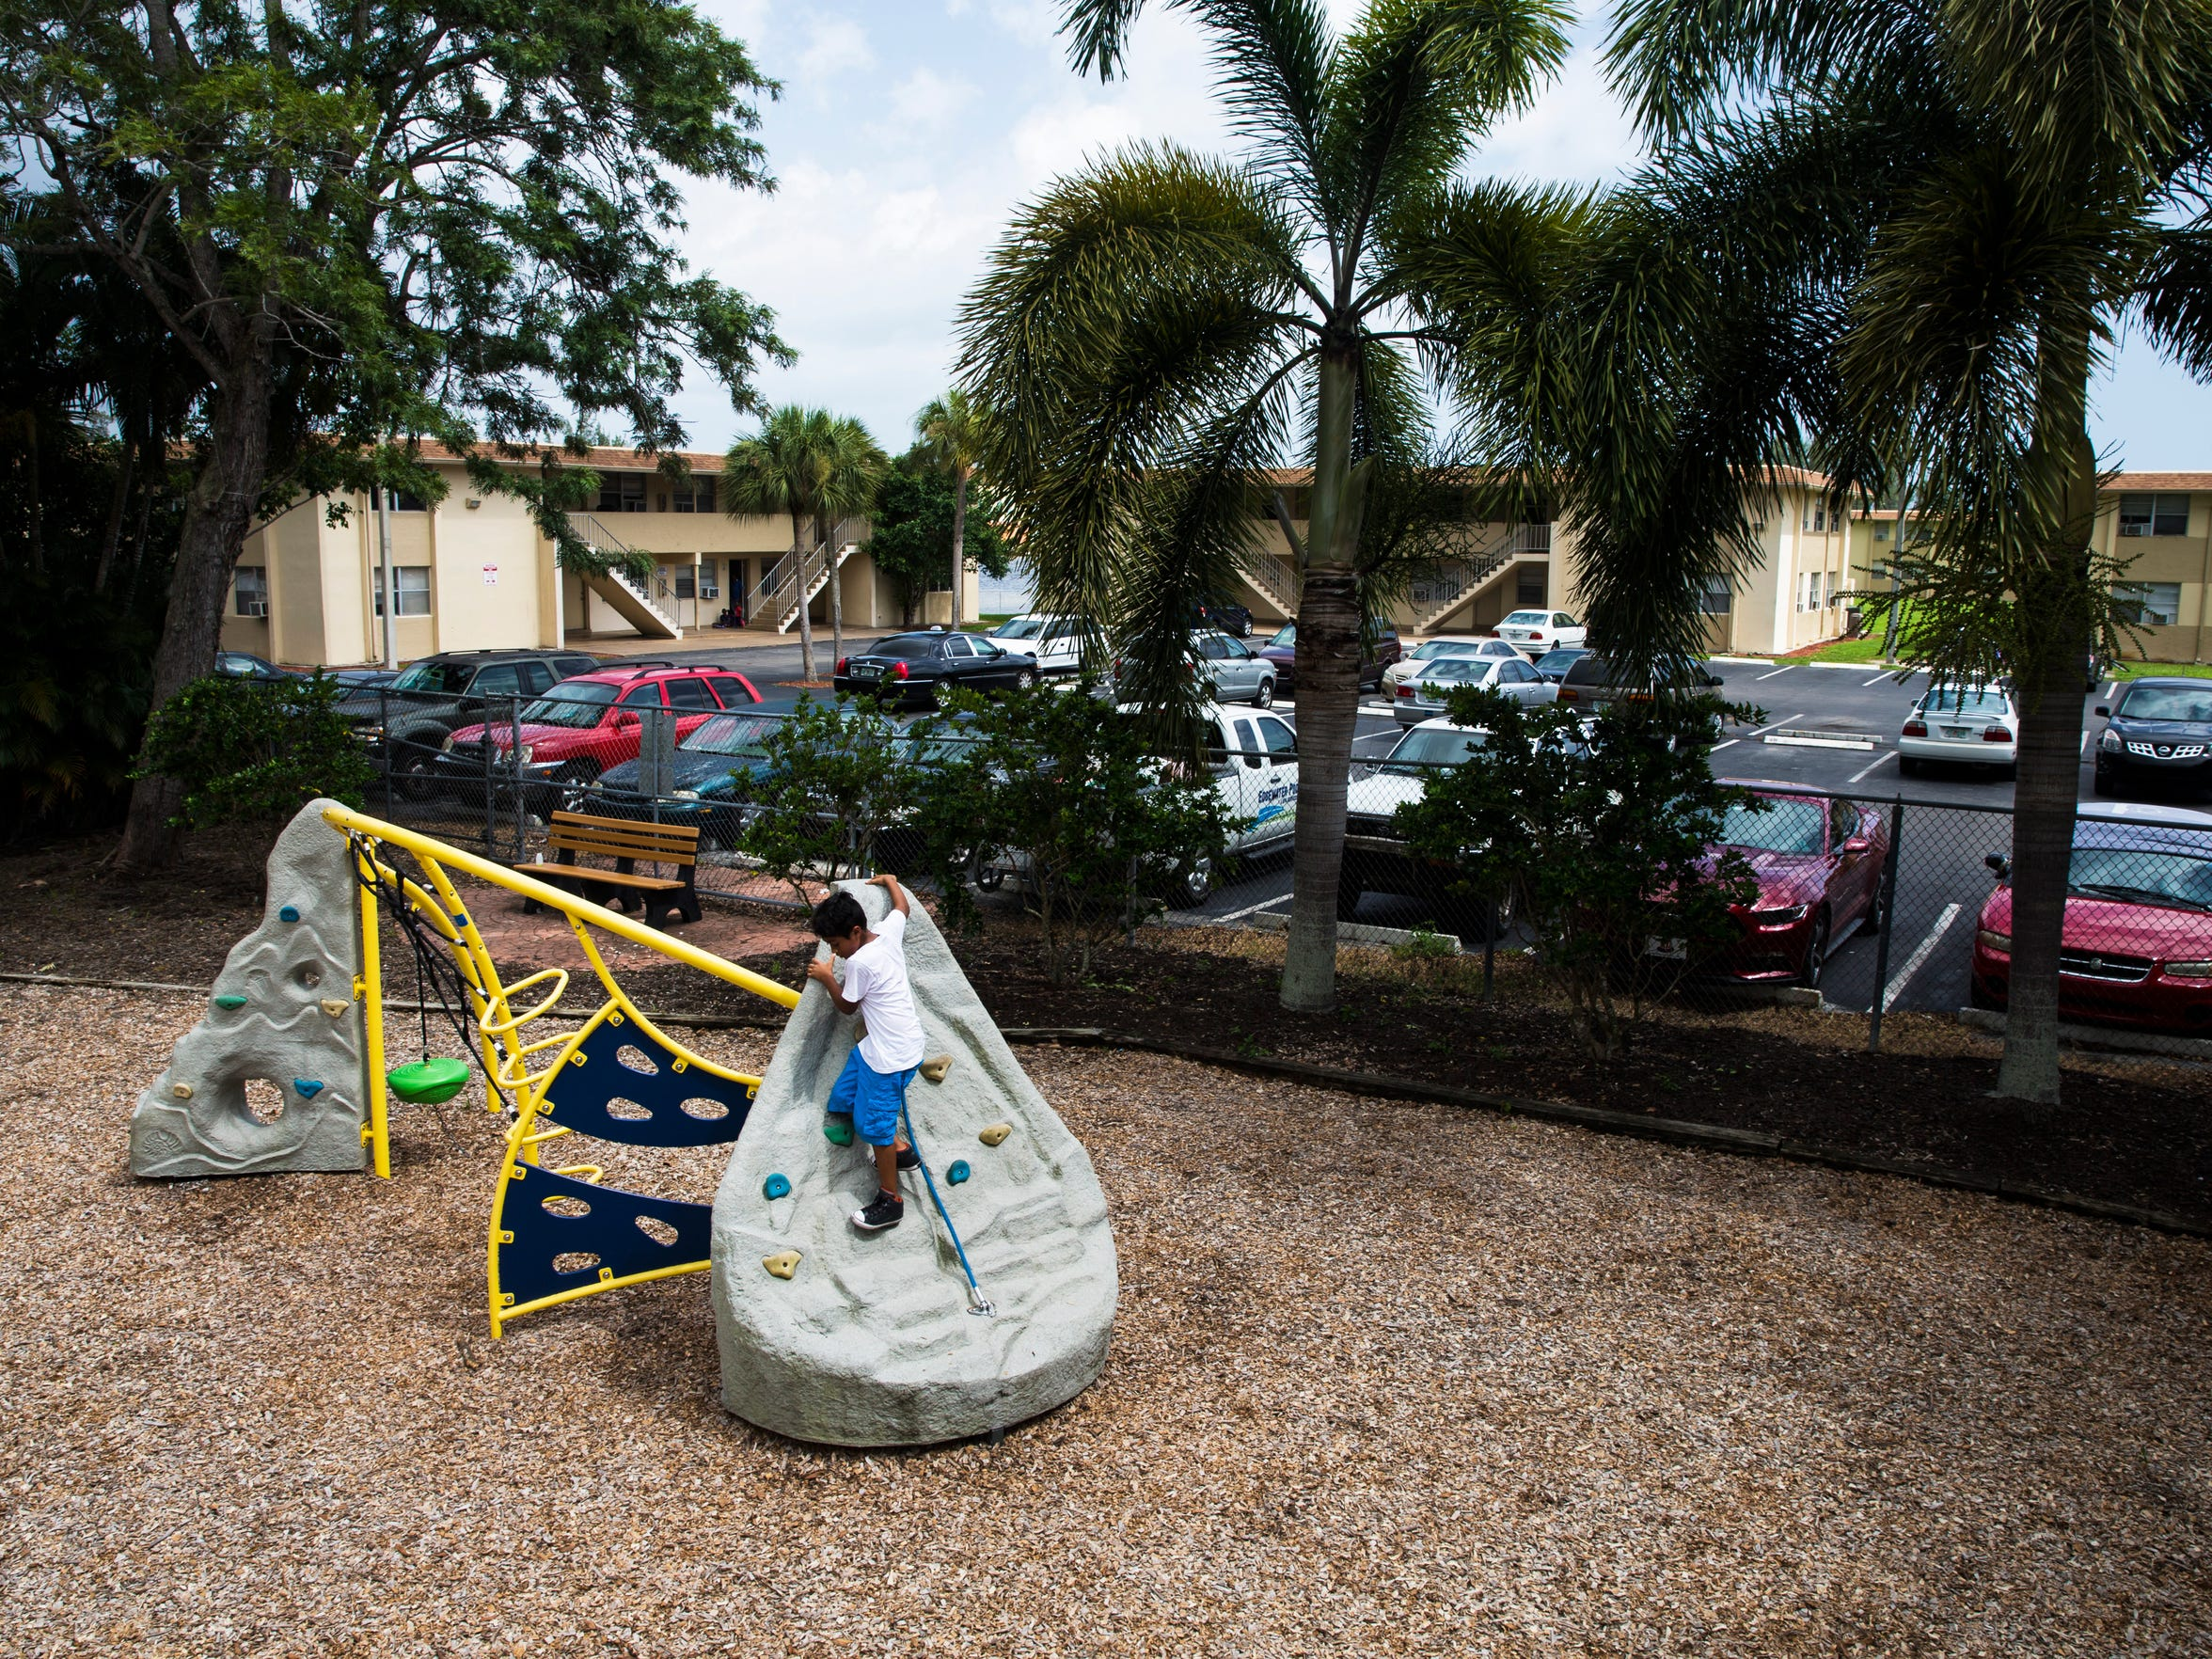 A young boy climbs the jungle gym at the Anthony Park